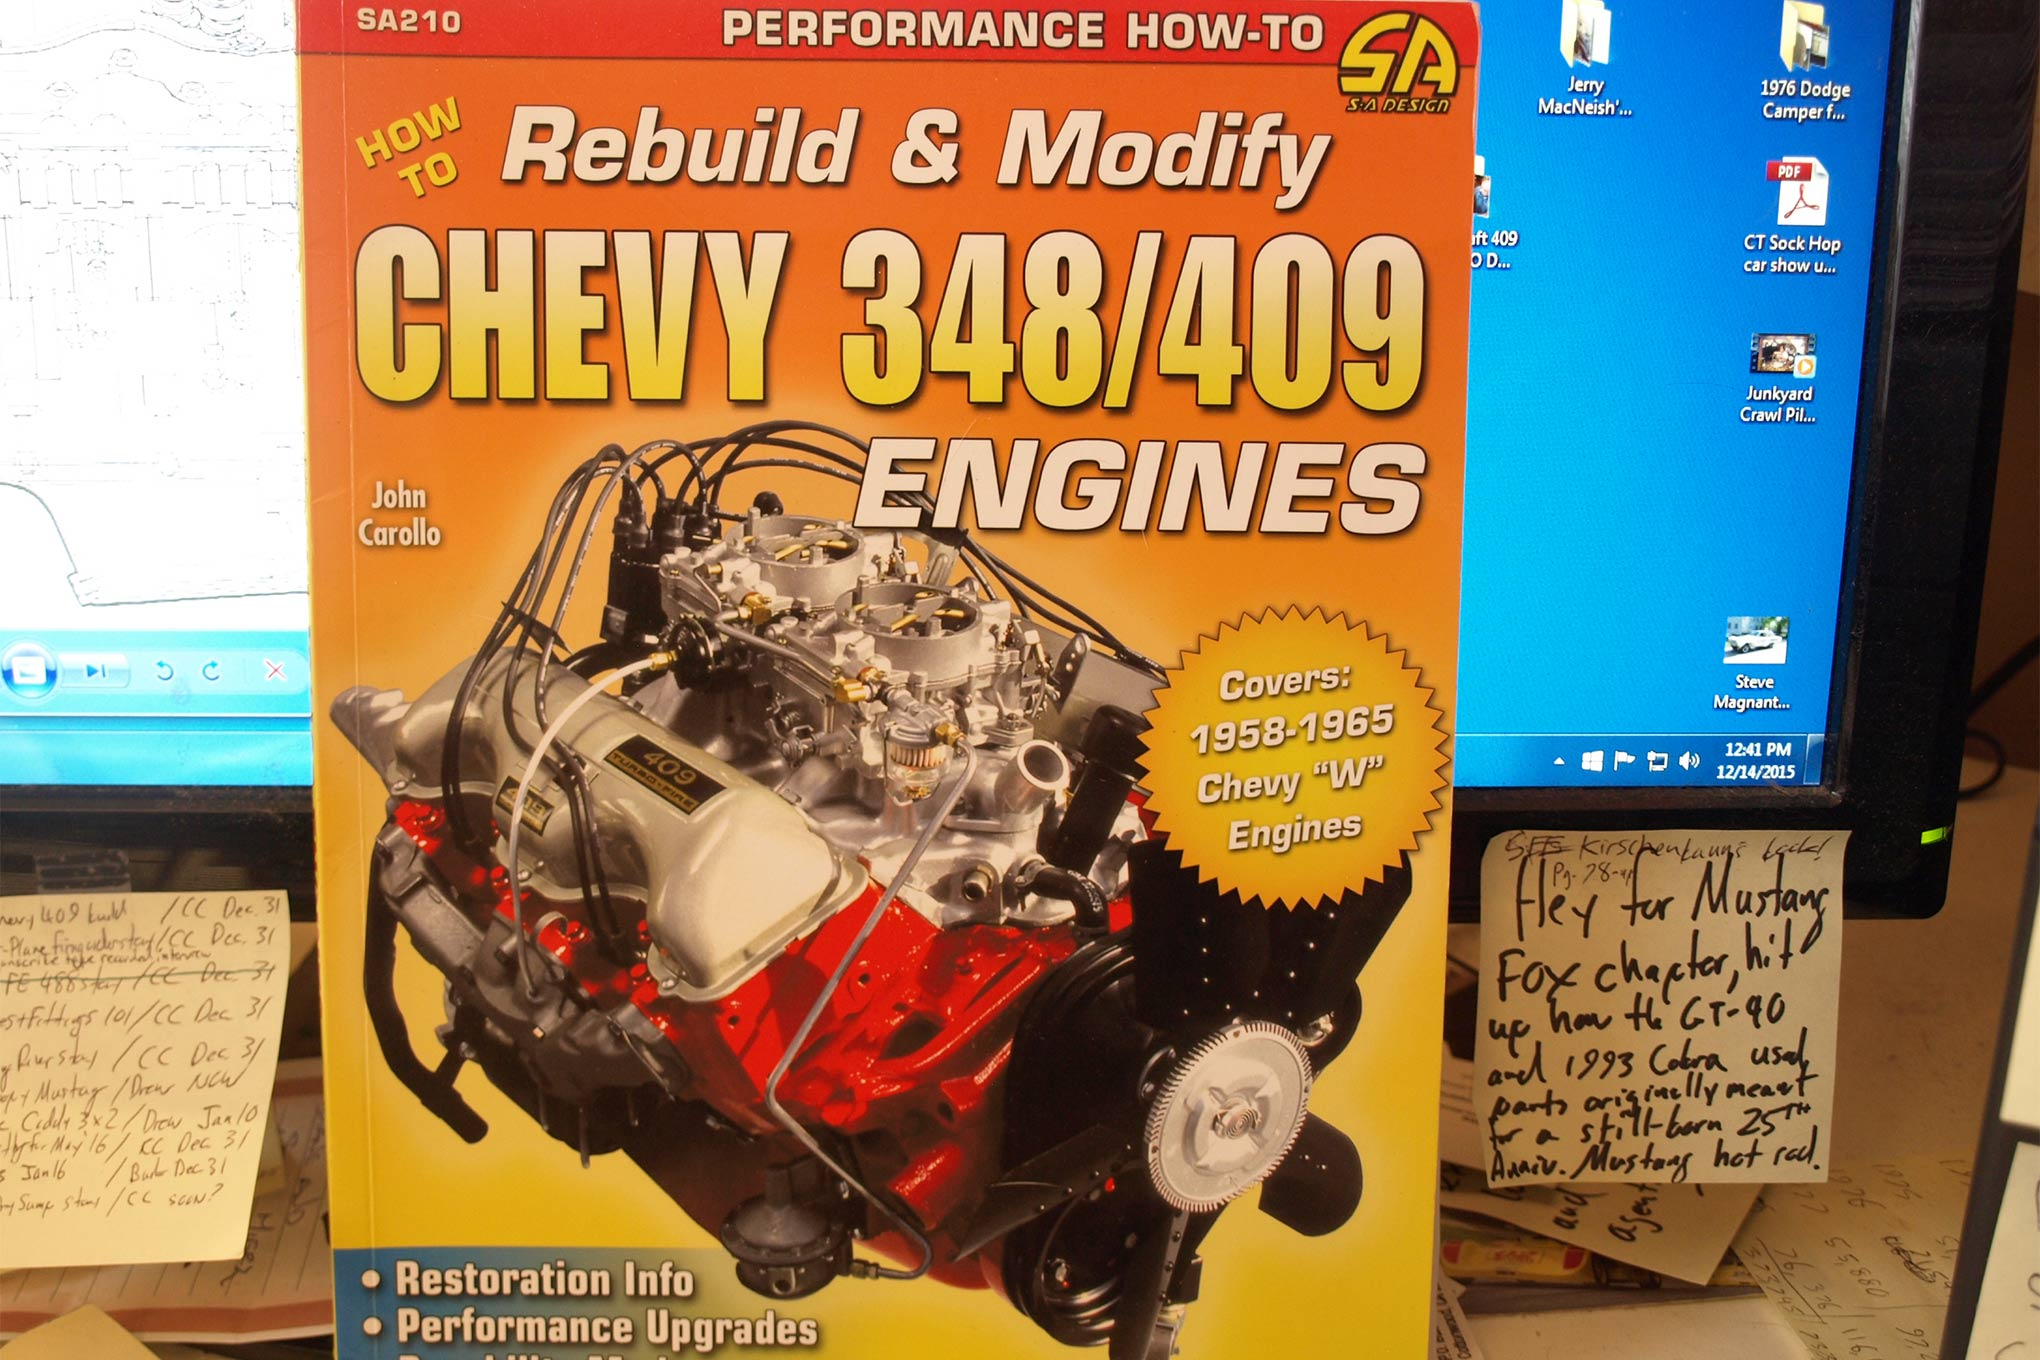 Grab a copy of John Carollo's 348/409 book from CarTech to learn more about Chevy's first big-block. From stock 250hp family haulers to 750hp Nostalgia Super Stockers, the book highlights the W-engine's history and potential.